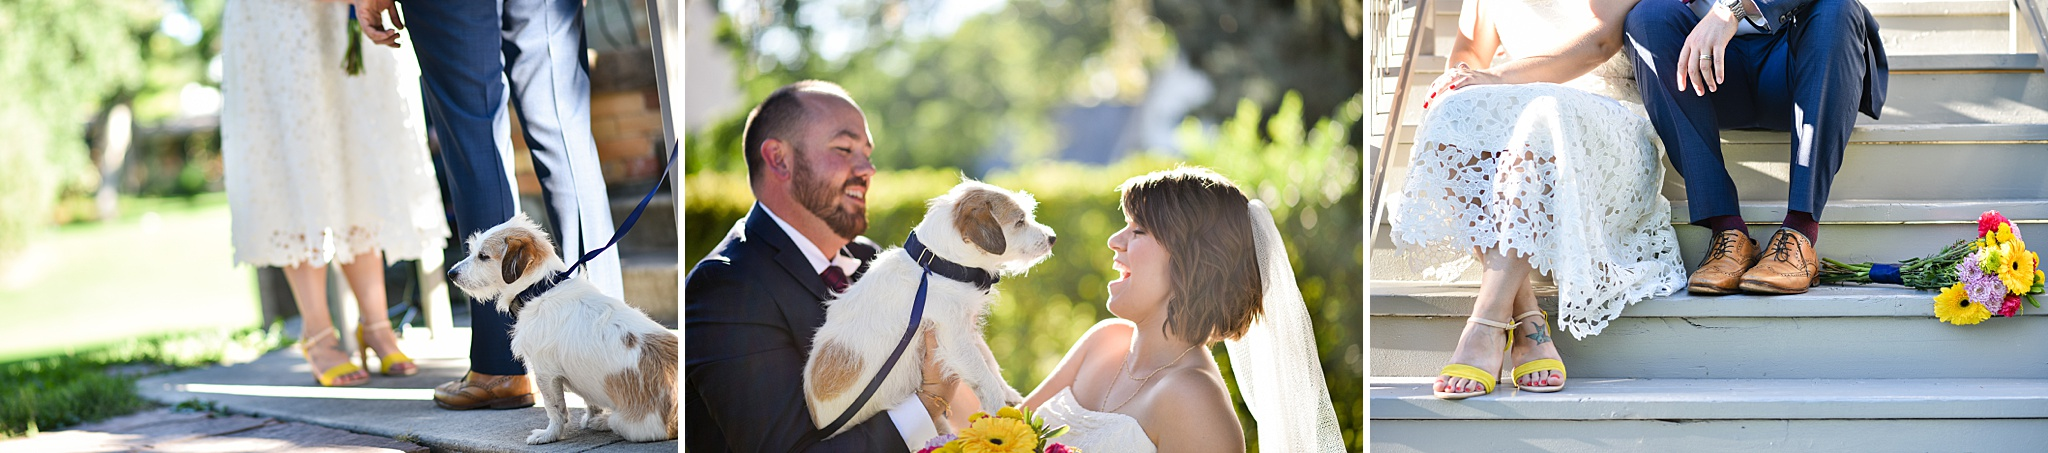 Felise and Adam had their adorable scruffy pupper at their ceremony with them at the Montclair Civic Center.